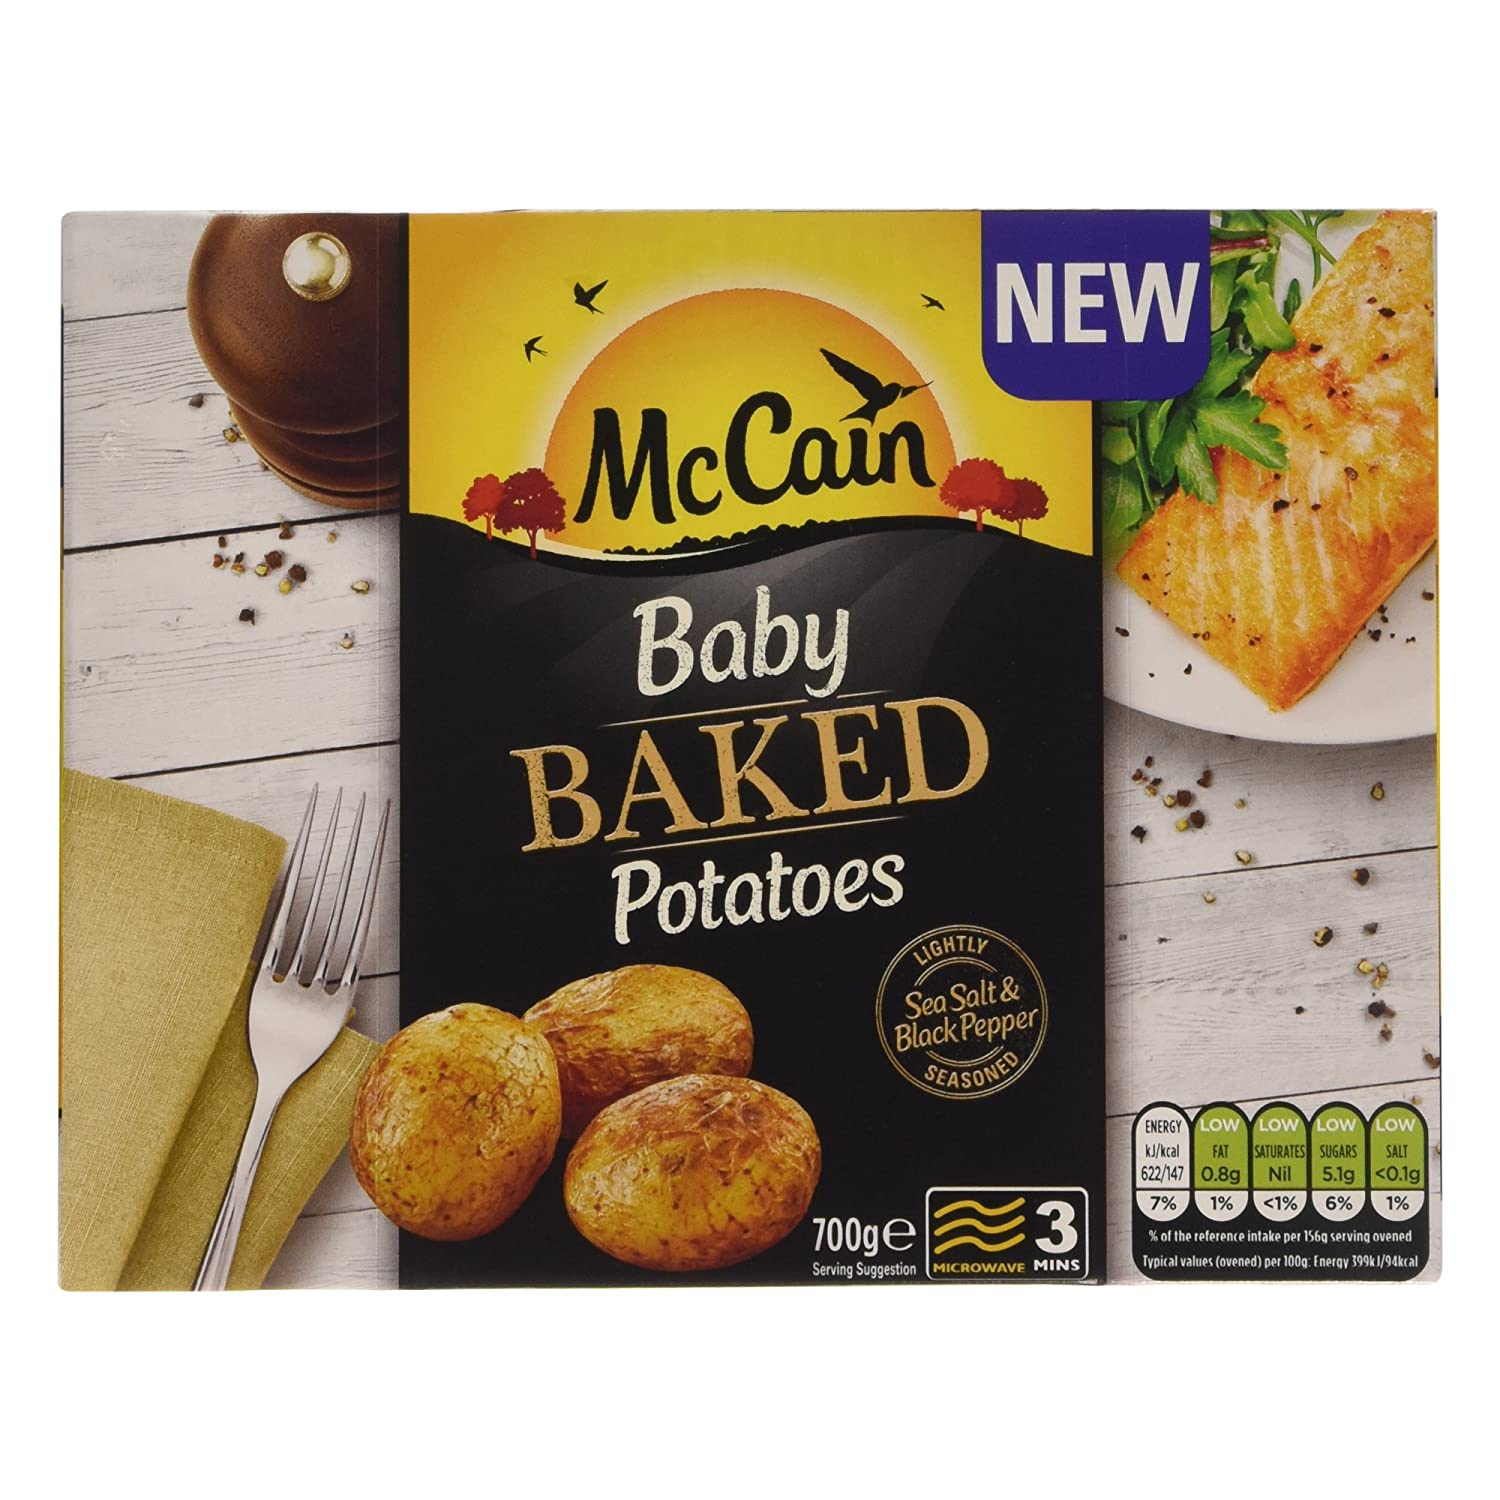 Mccain Baby Baked Potatoes 700g Frozen Amazoncouk Grocery